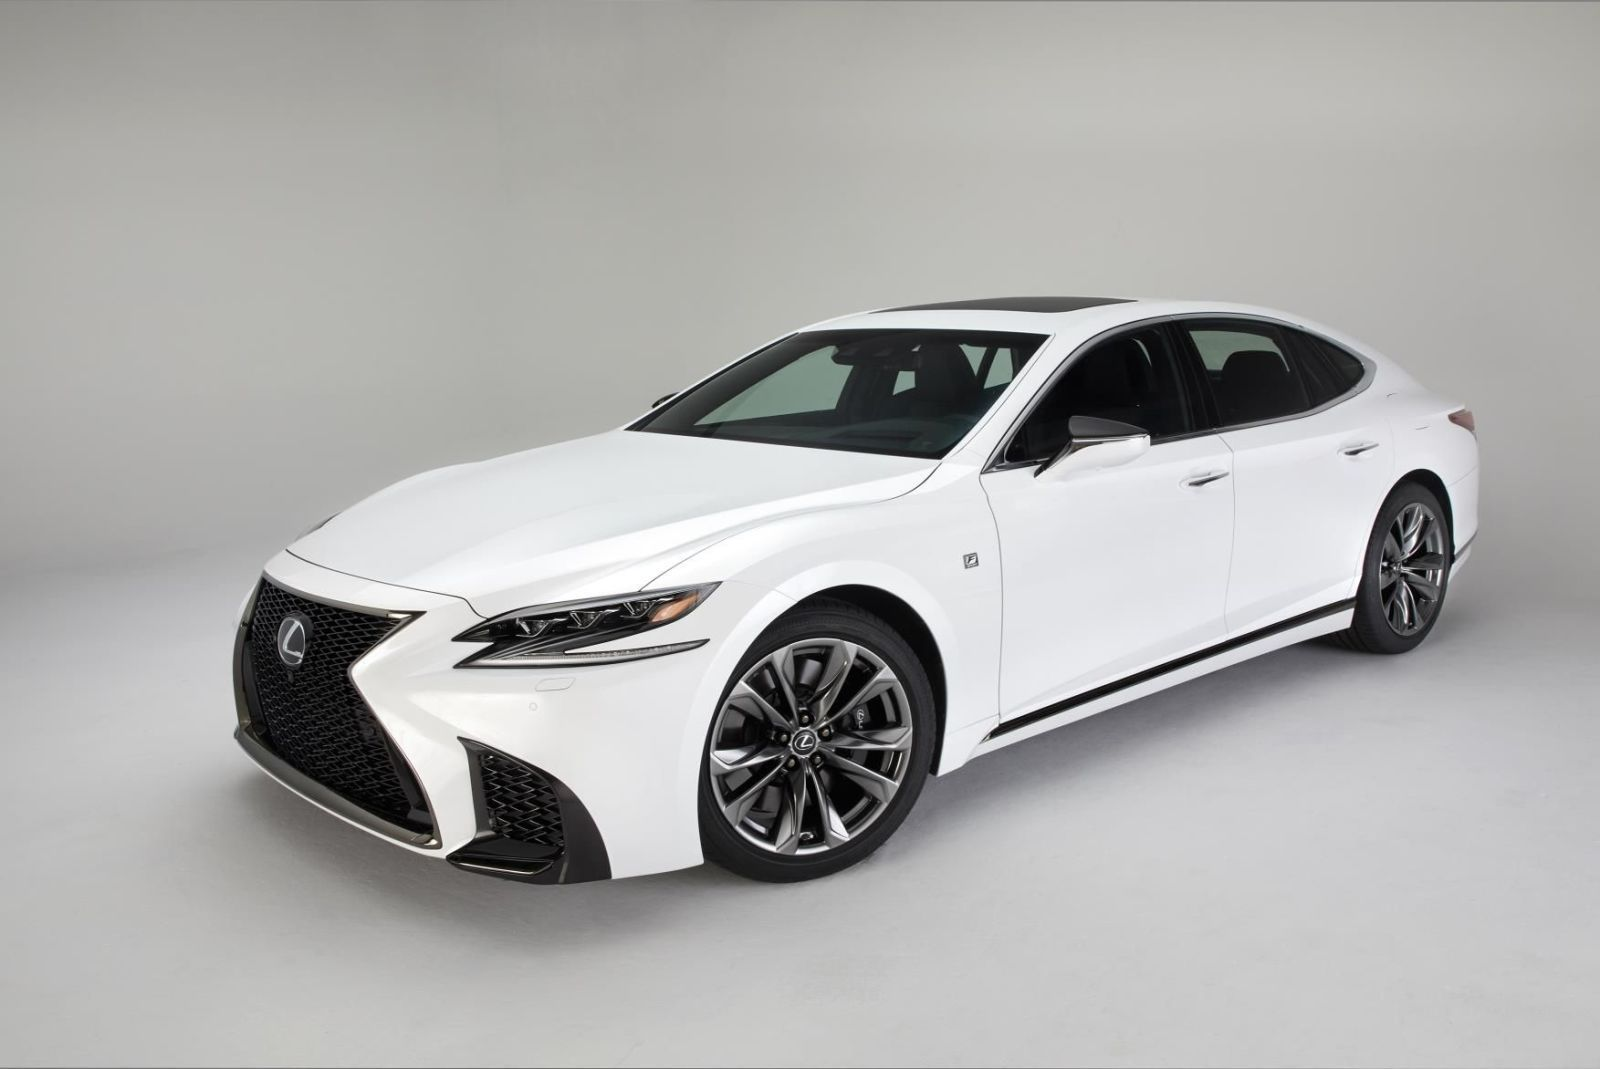 The Brand New Lexus Ls 500 F Sport Will Only Be Available With A Twin Turbo V6 Lexus Ls New Lexus Lexus Cars 2018 lexus ls 500 f sport